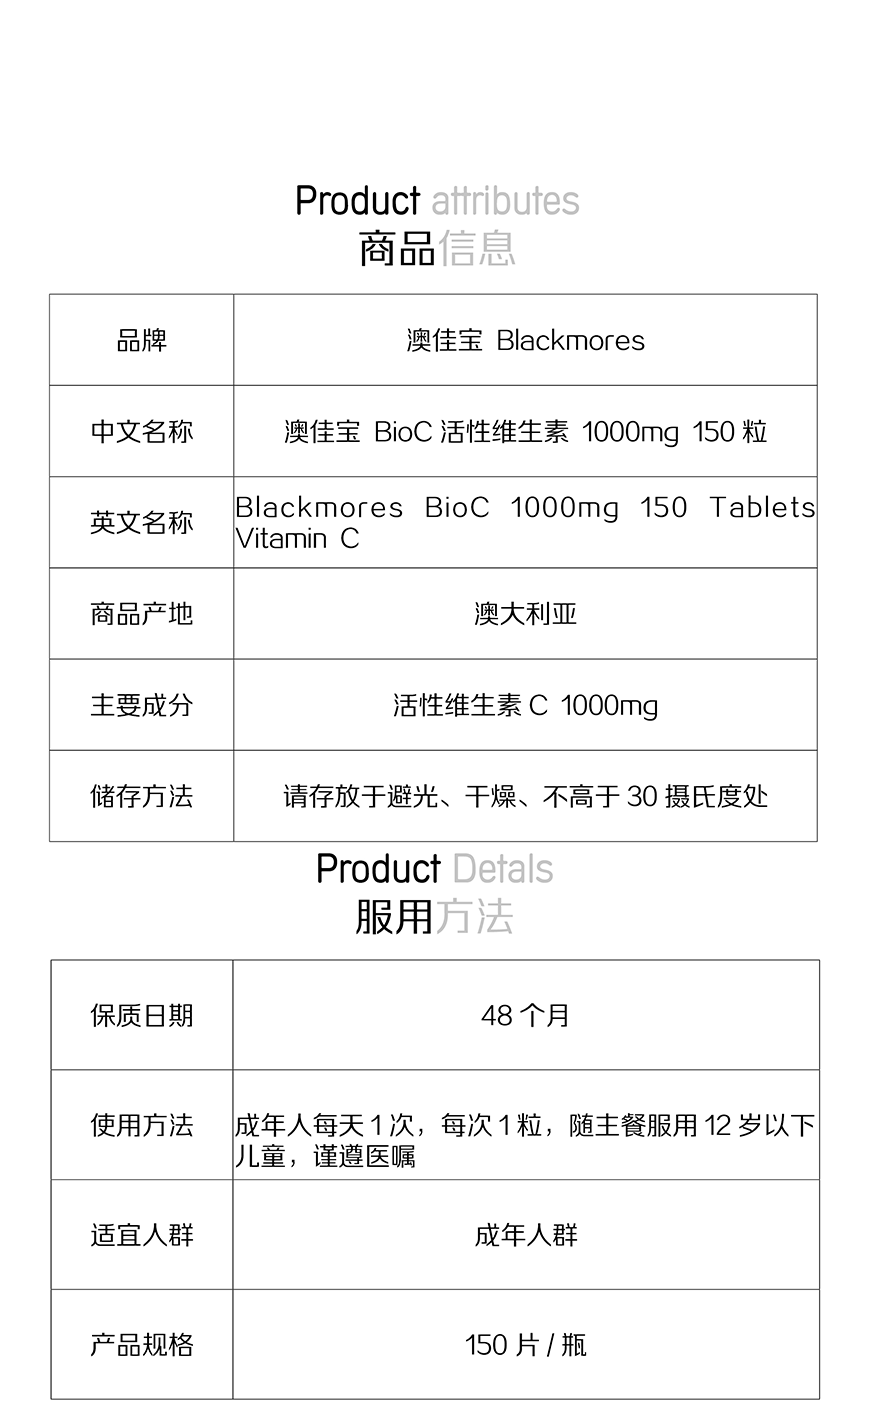 Home Blackmores Bio C 1000mg 150 Tablets To Top